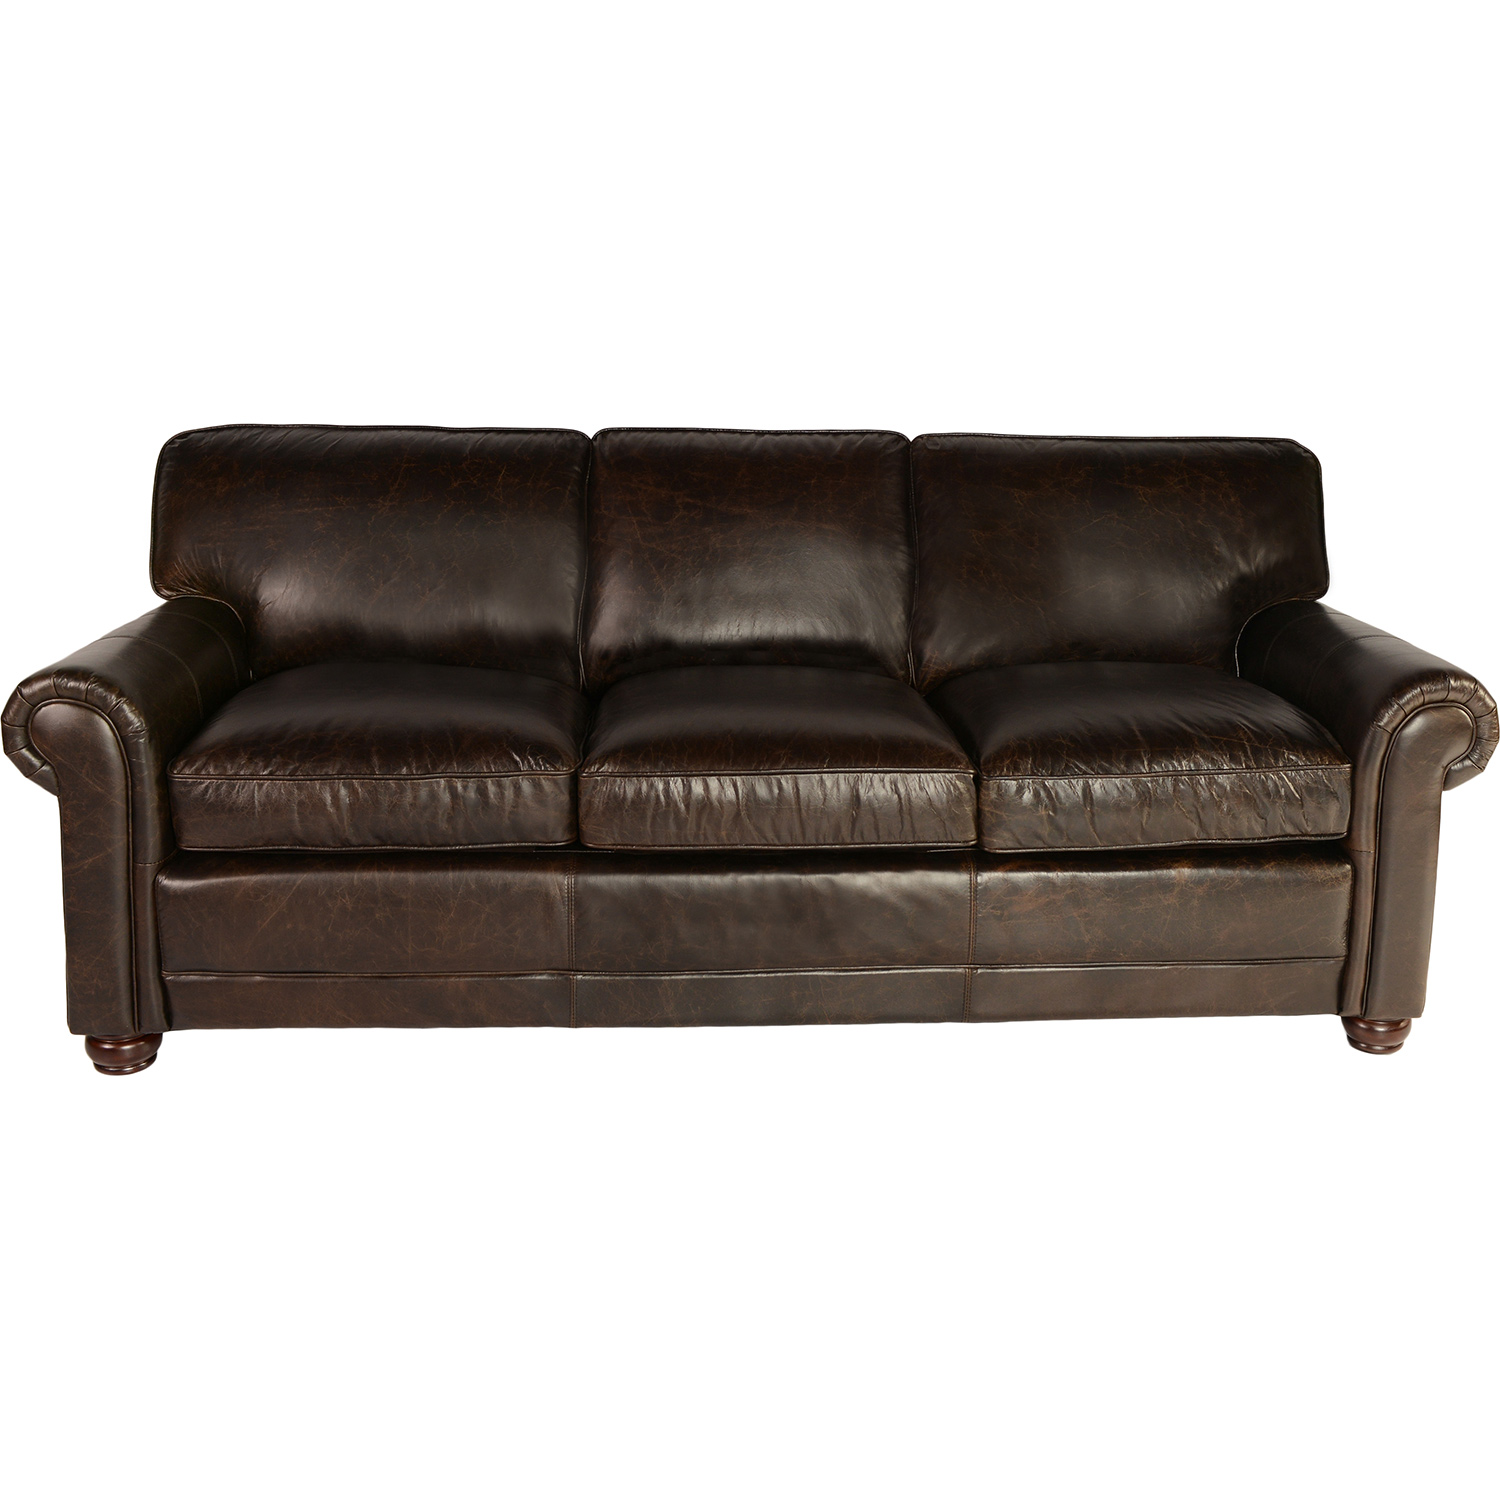 Brompton Leather Sofa Images 13 Telluride Sofa Decorating  : 1001 30 9010A 1 from favefaves.com size 1500 x 1500 jpeg 340kB